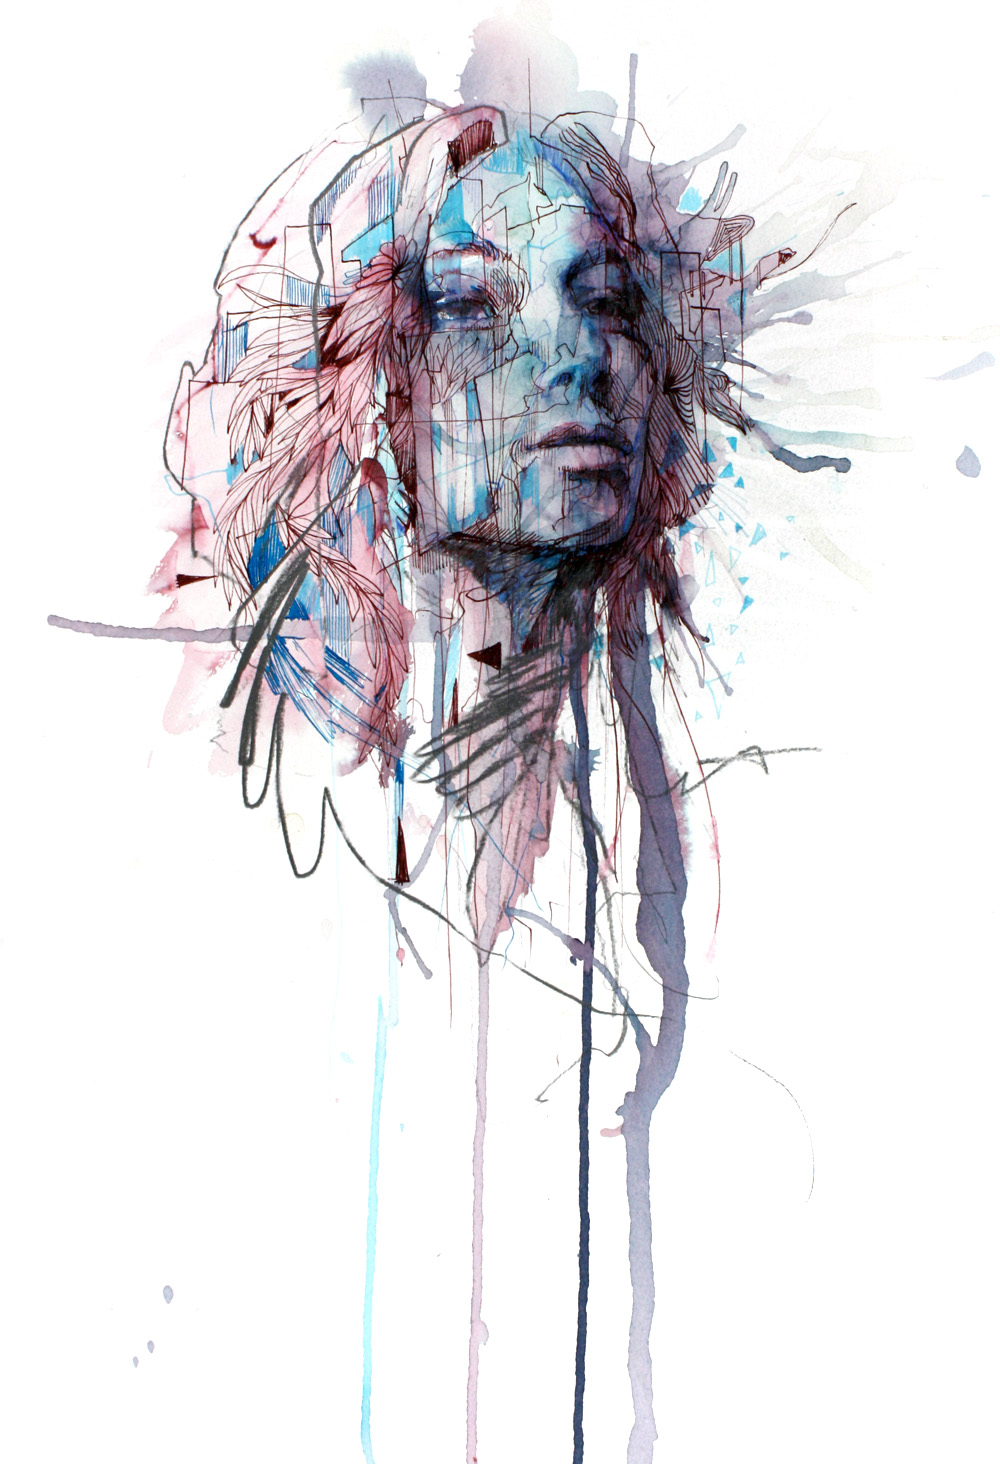 Unwind by Carne Griffiths